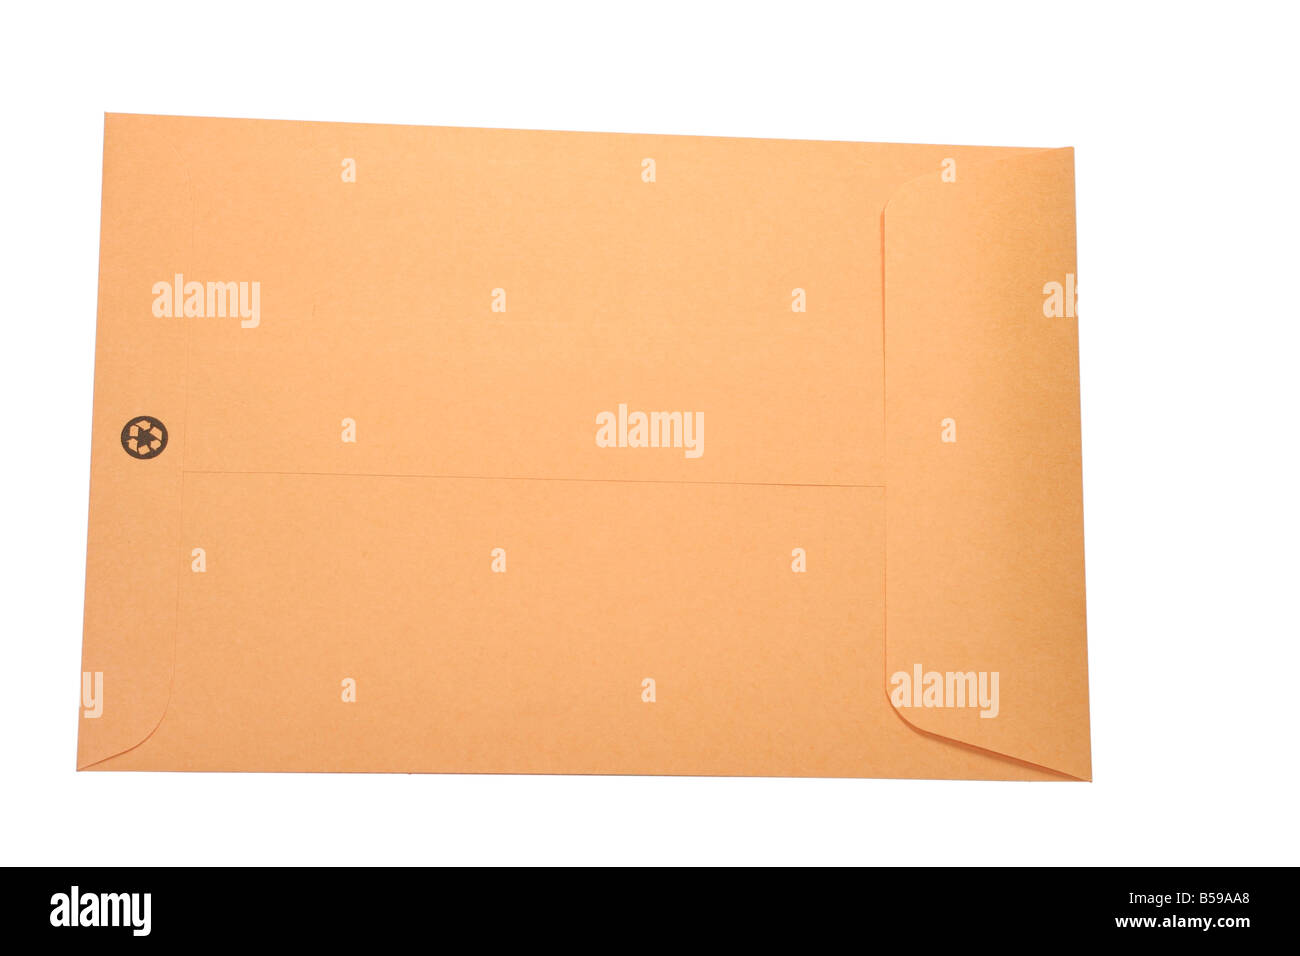 Plain brown gum seal envelope of recyclable material - Stock Image